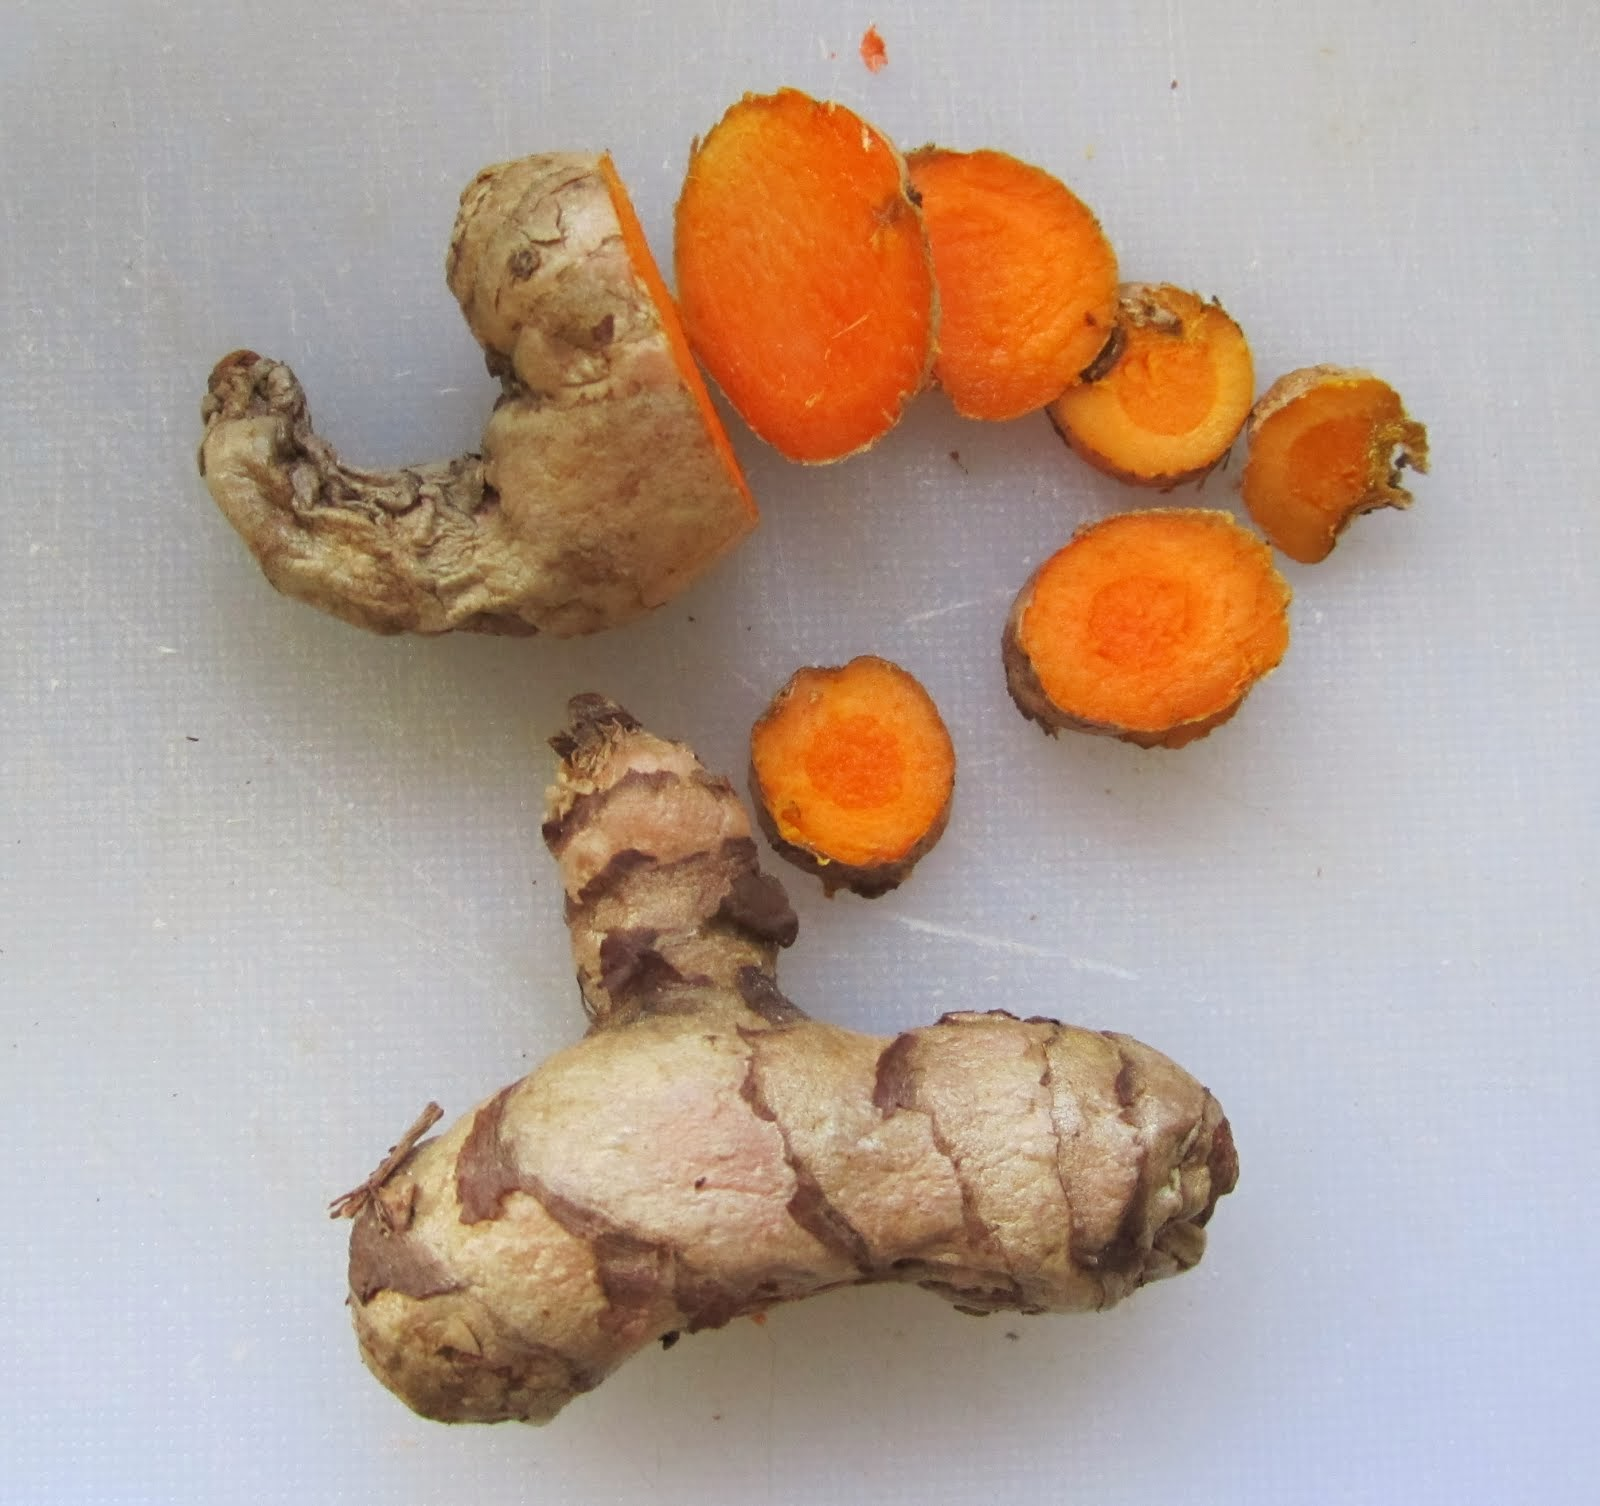 Fresh tumeric root